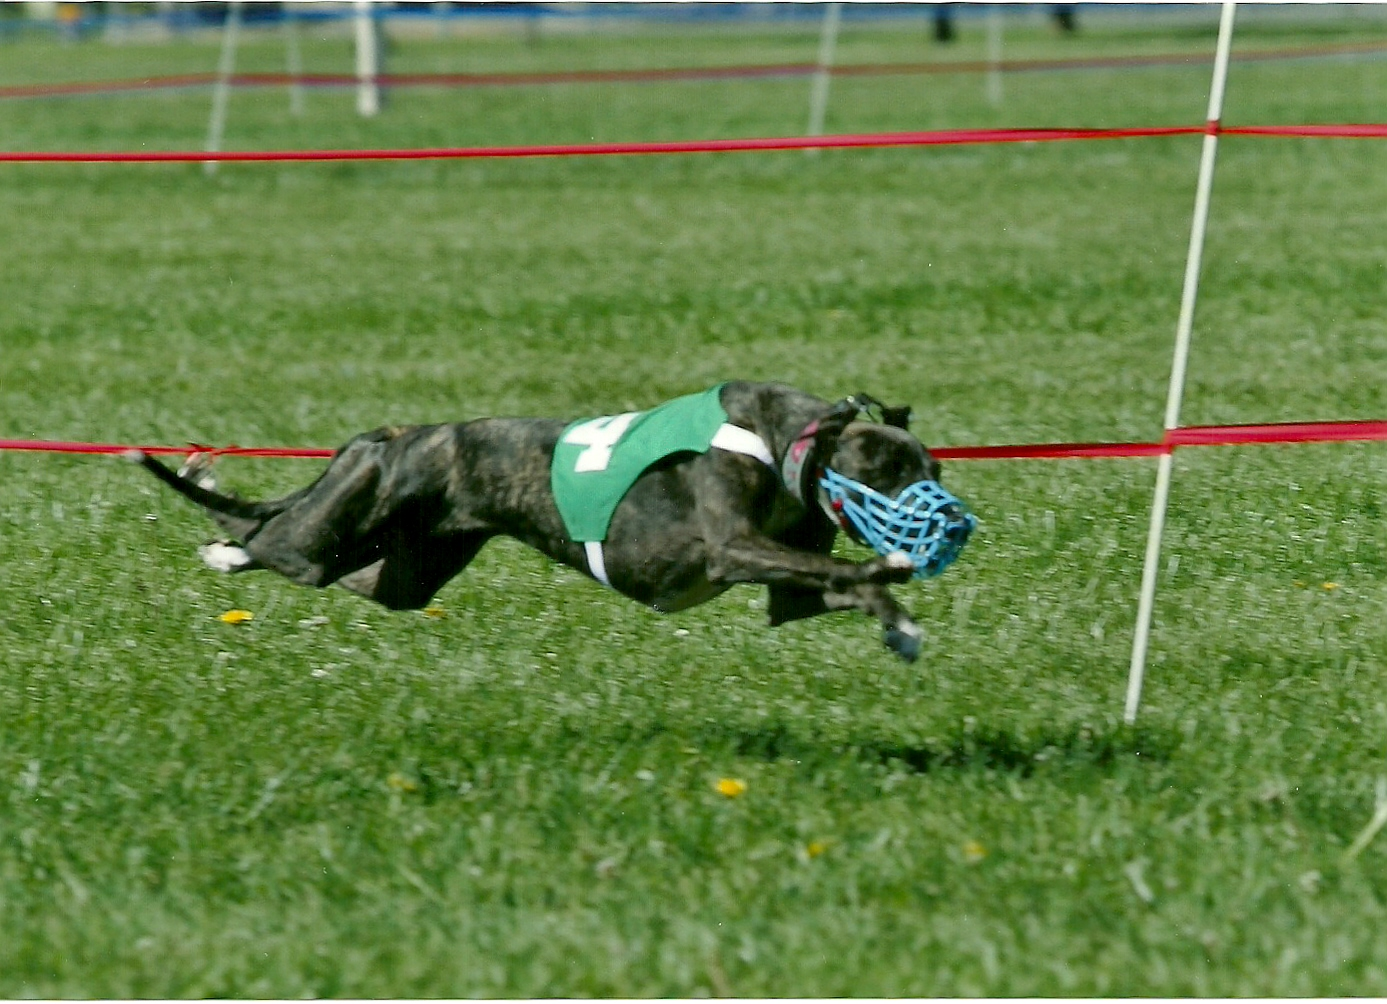 File:Whippet dog lucy racing 10002.jpg - Wikimedia Commons